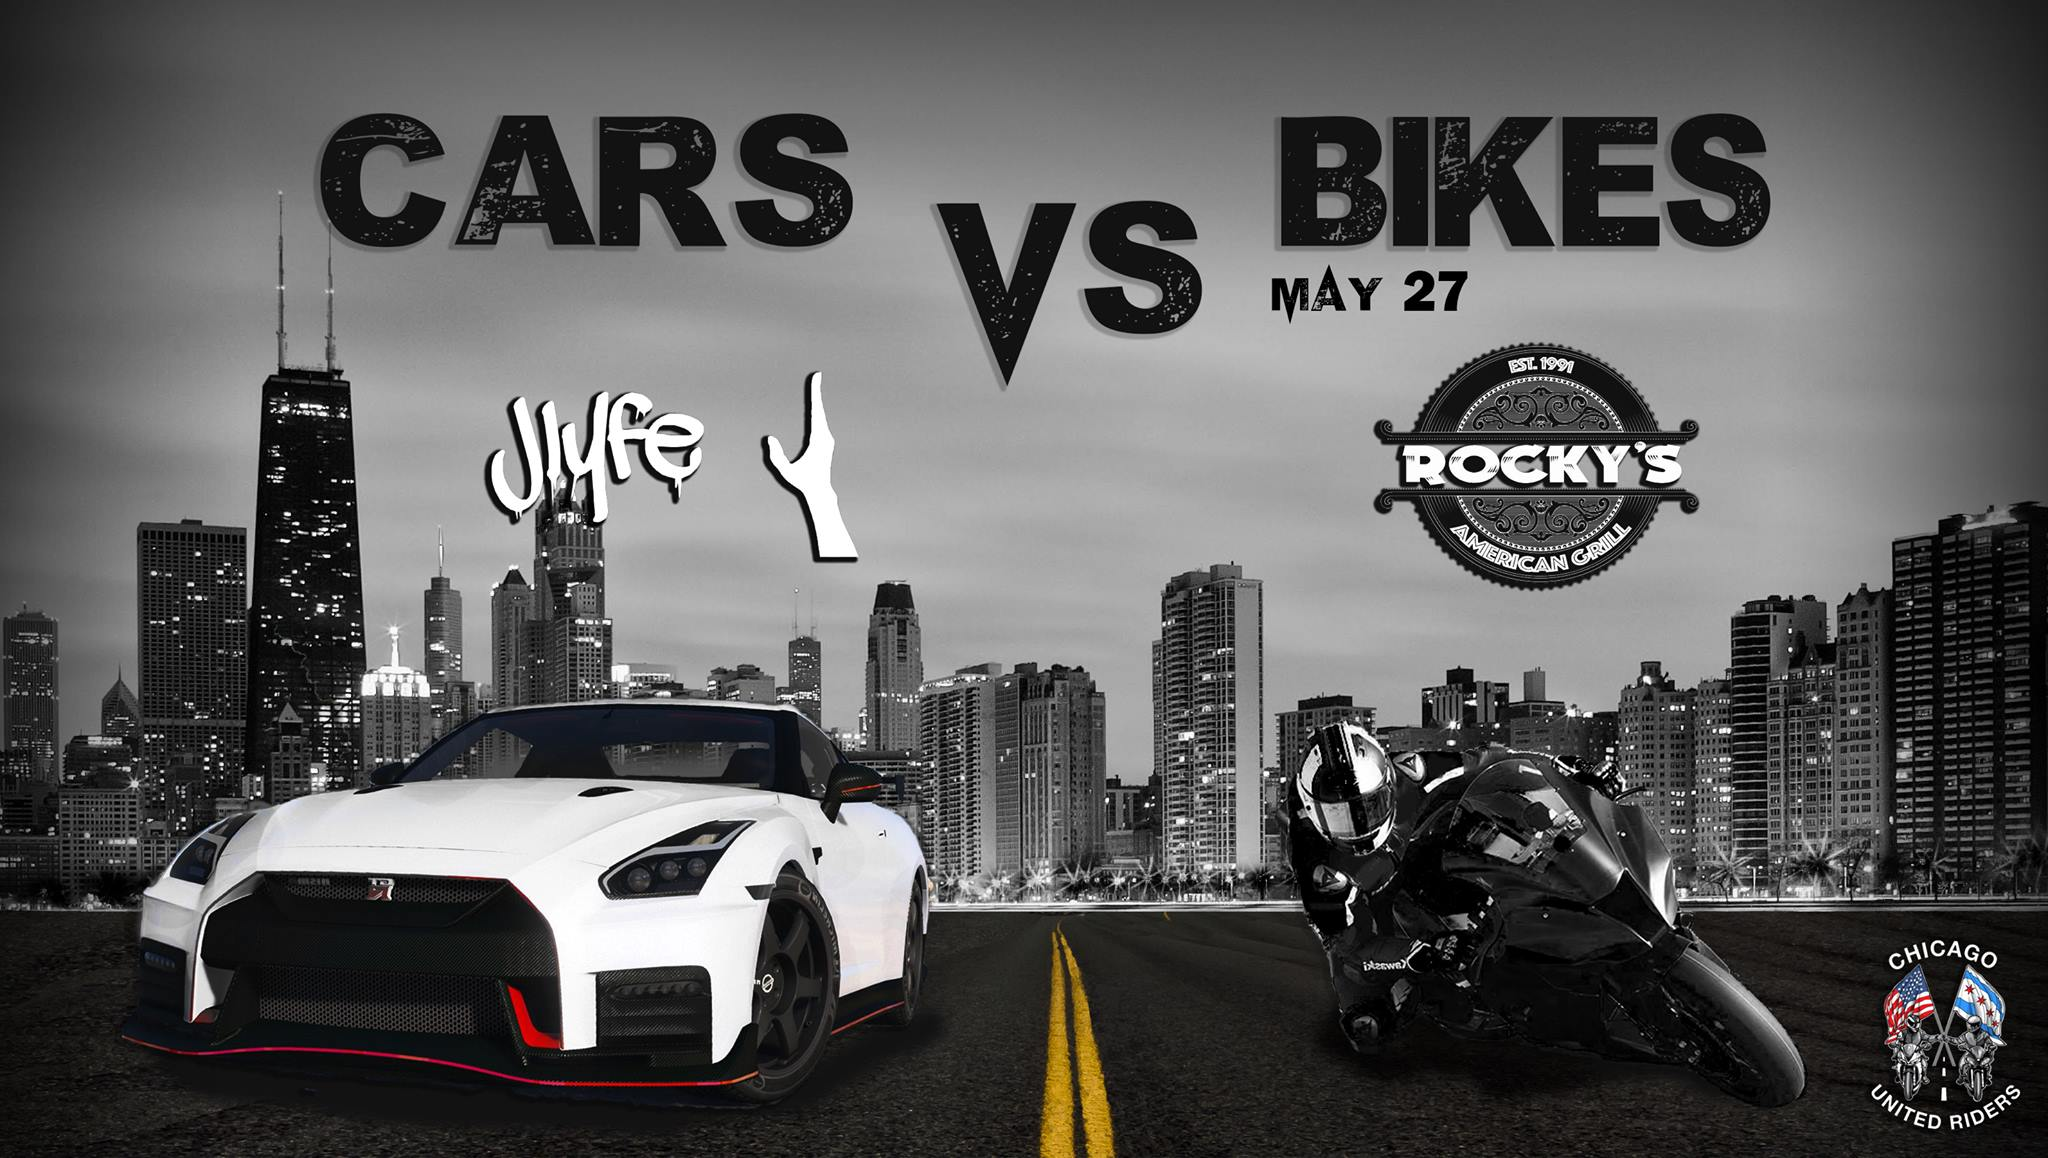 cars vs bikes | chitownmeets - find and share local chicago car